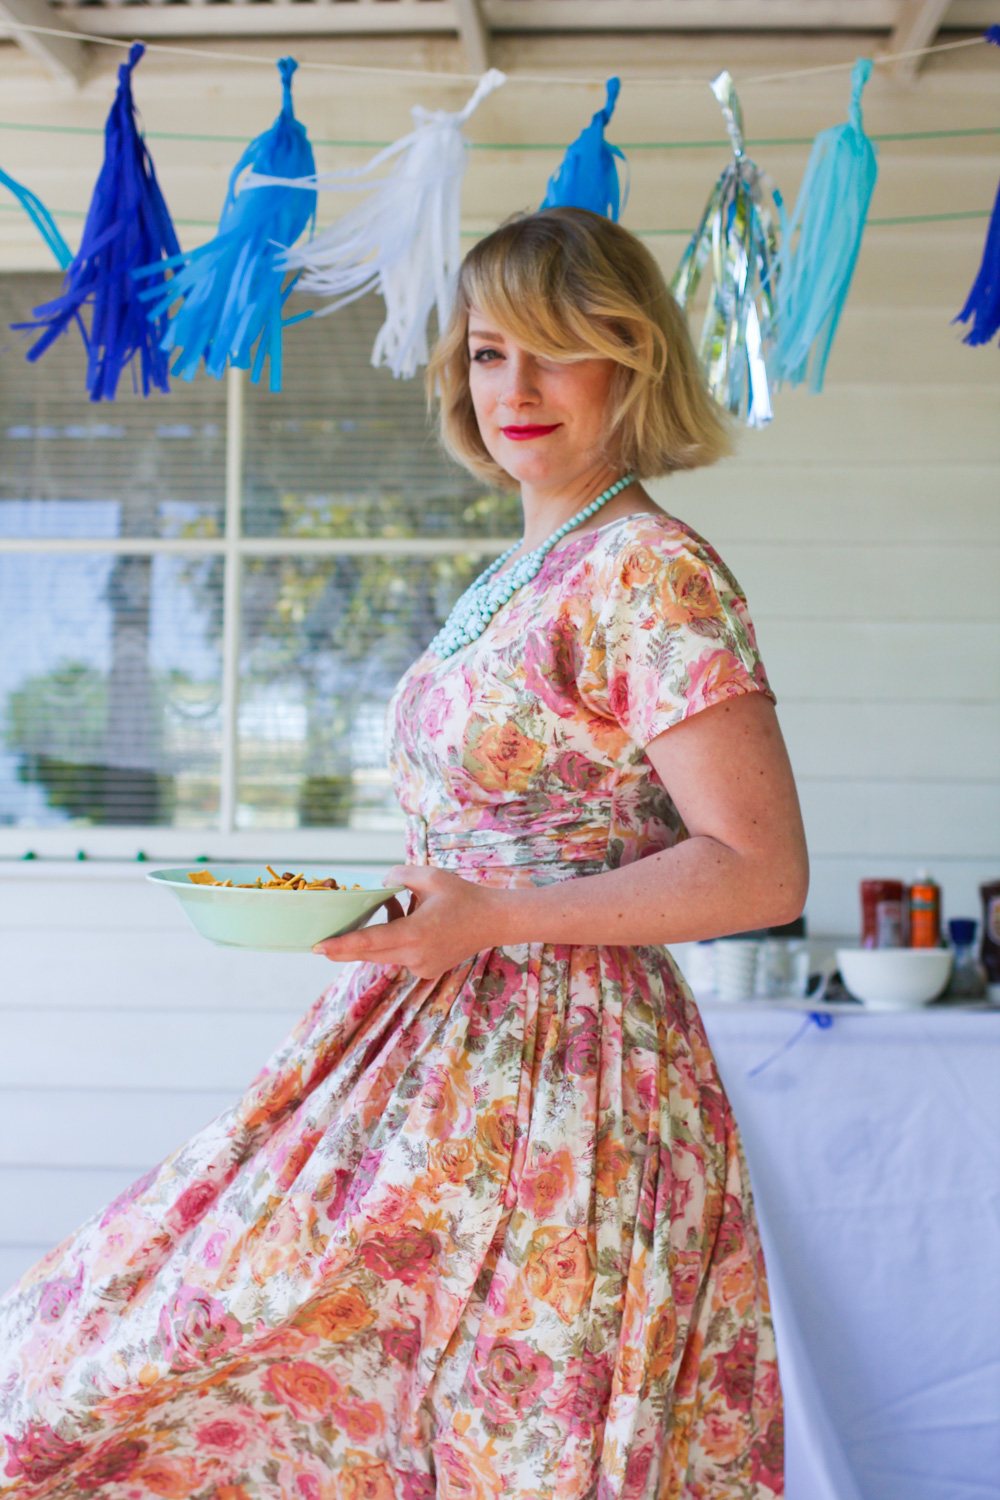 @findingfemme wears Lazybones summer dress from Lark.